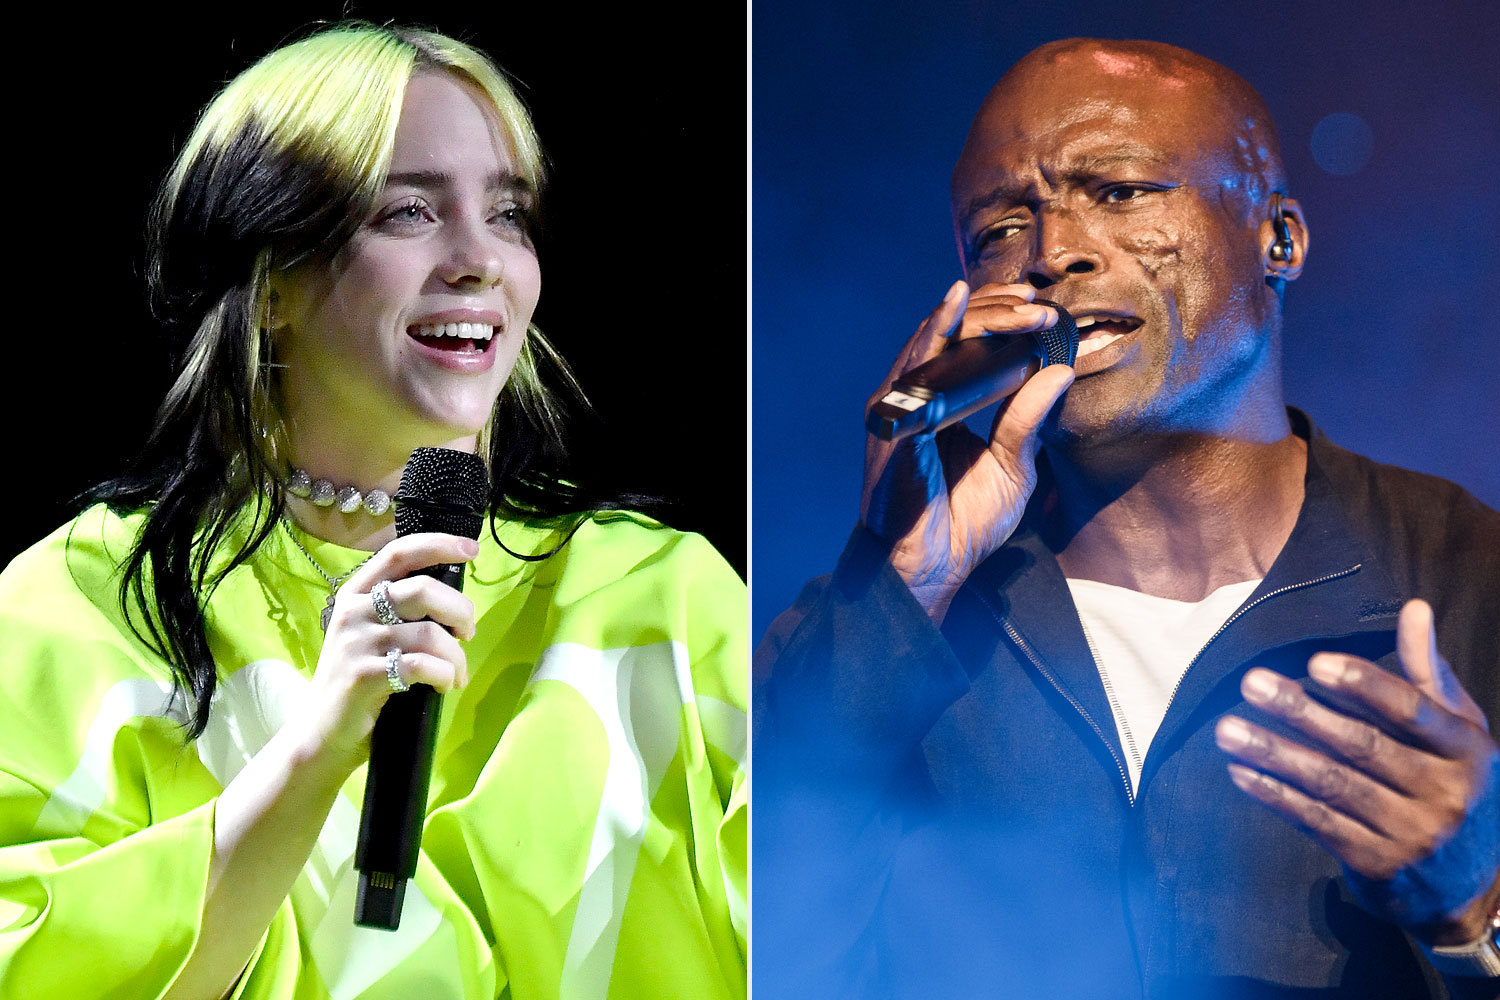 Billie Eilish, Seal